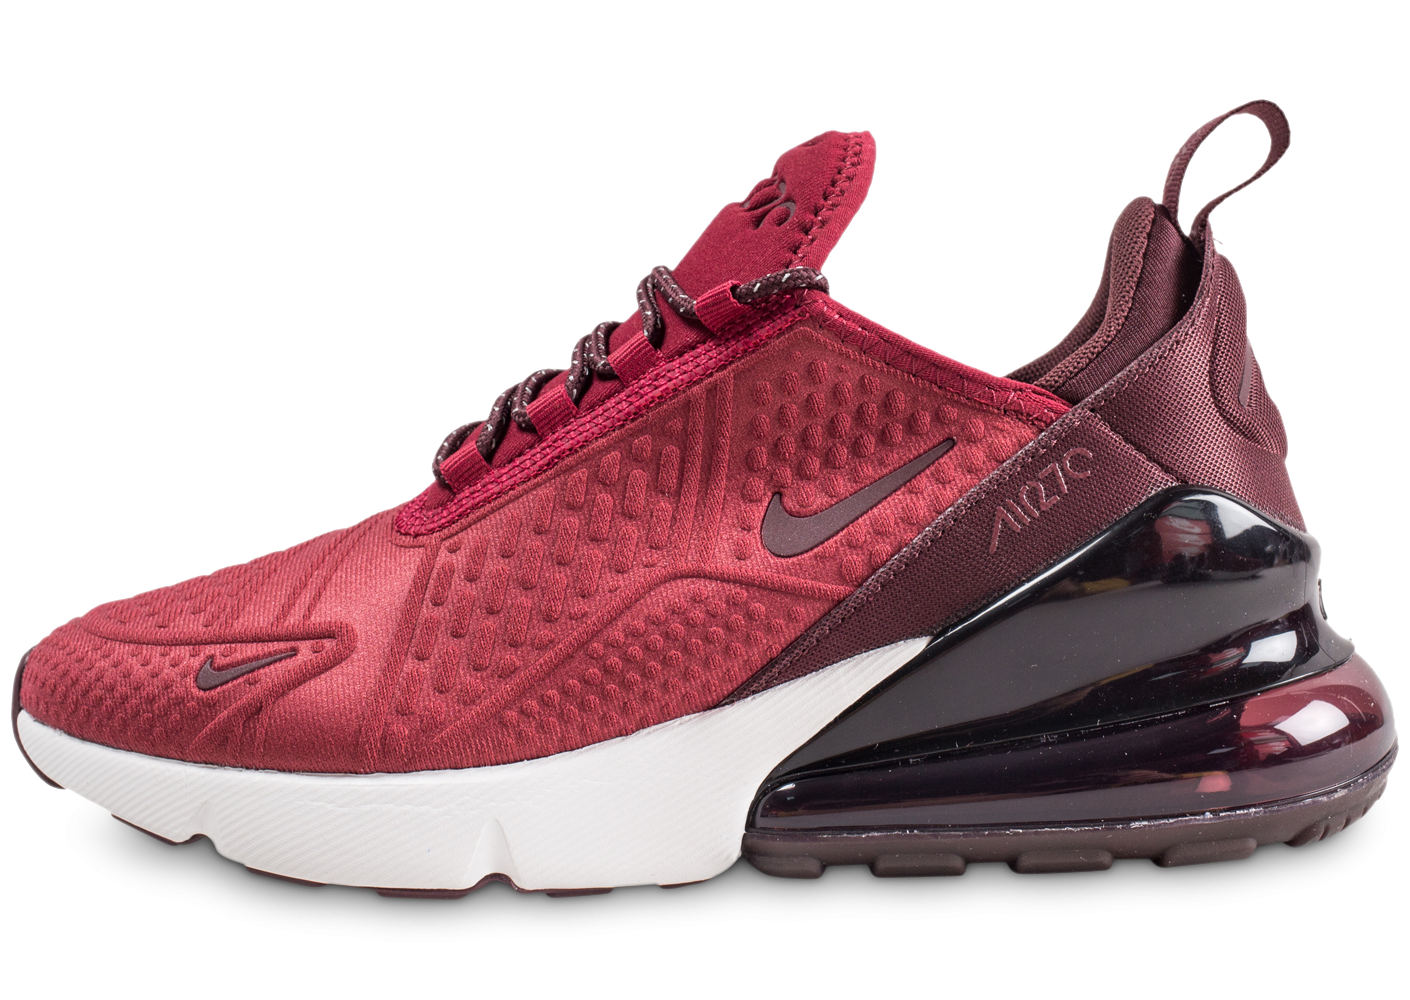 Nike Air Max 270 SE bordeaux